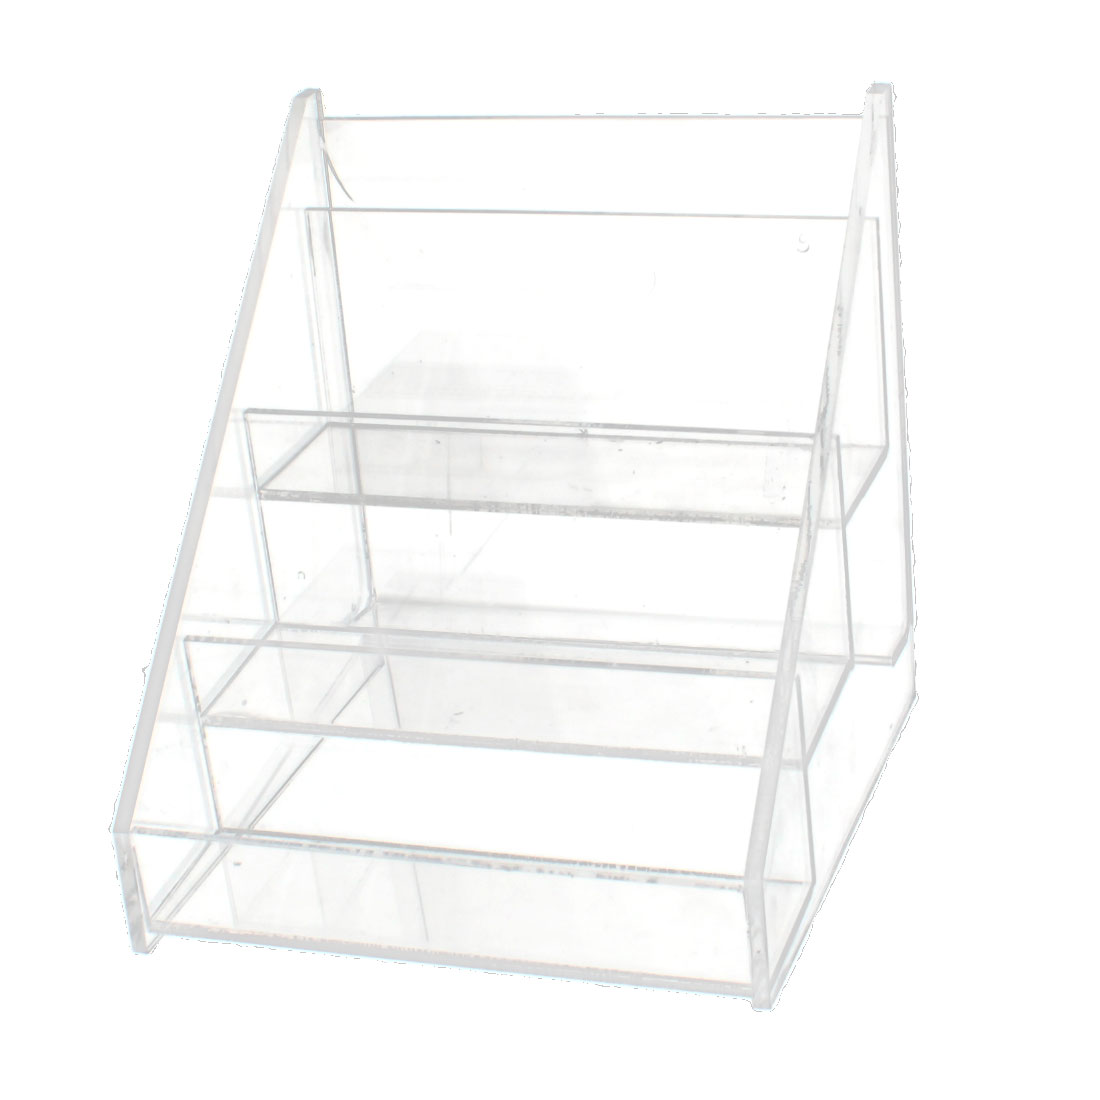 Plastic 3 Compartments Ladder Shaped Makeup Cosmetics Nail Polish Organizer Case Storage Insert Holder Clear